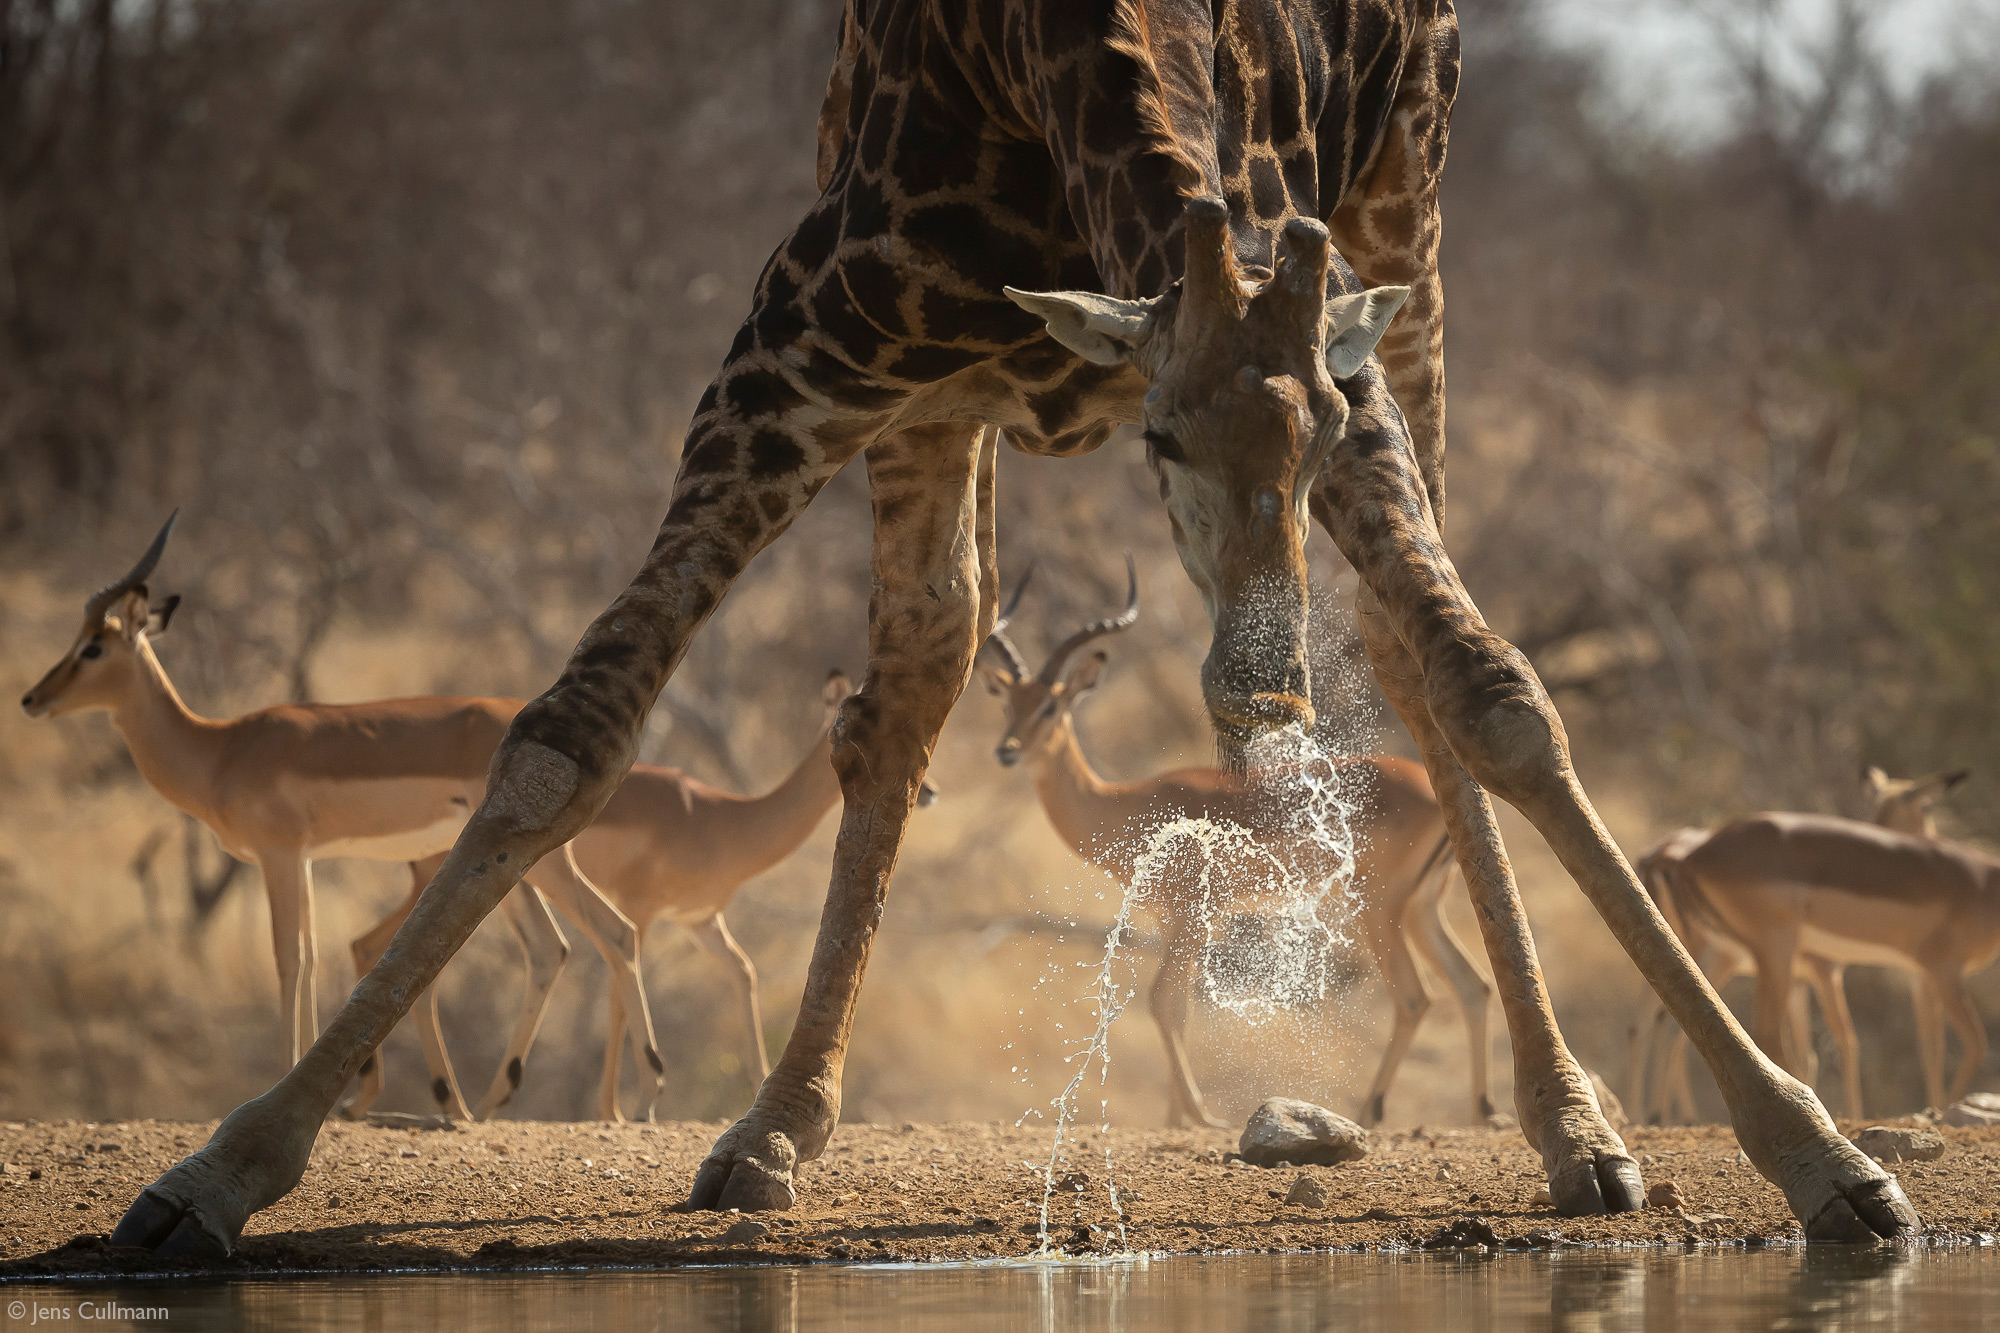 Giraffe drinking at a waterhole, Klaserie Private Nature Reserve, South Africa